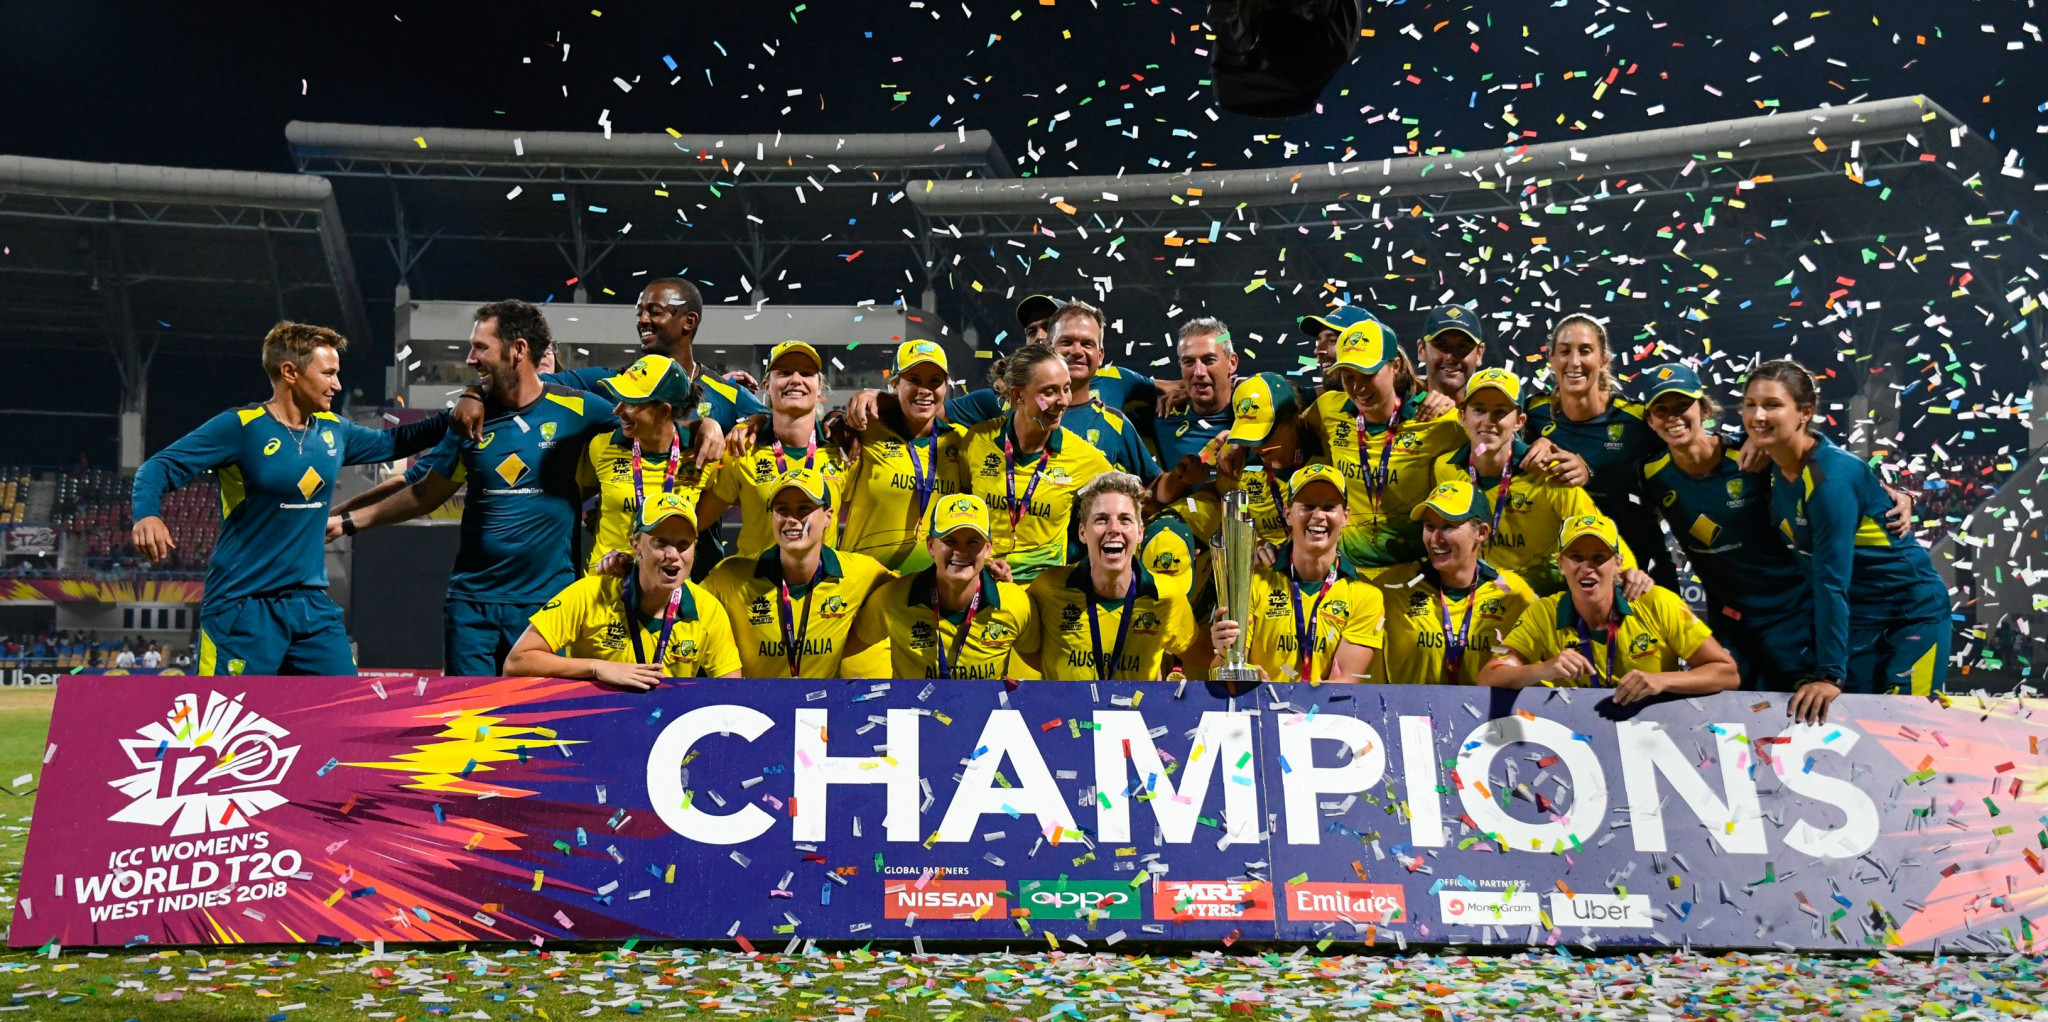 Hosts Australia will defend their ICC women's T20 World Cup title in 2020 with the lure of a final to be held at the Melbourne Cricket Ground on International Women's Day ©Getty Images